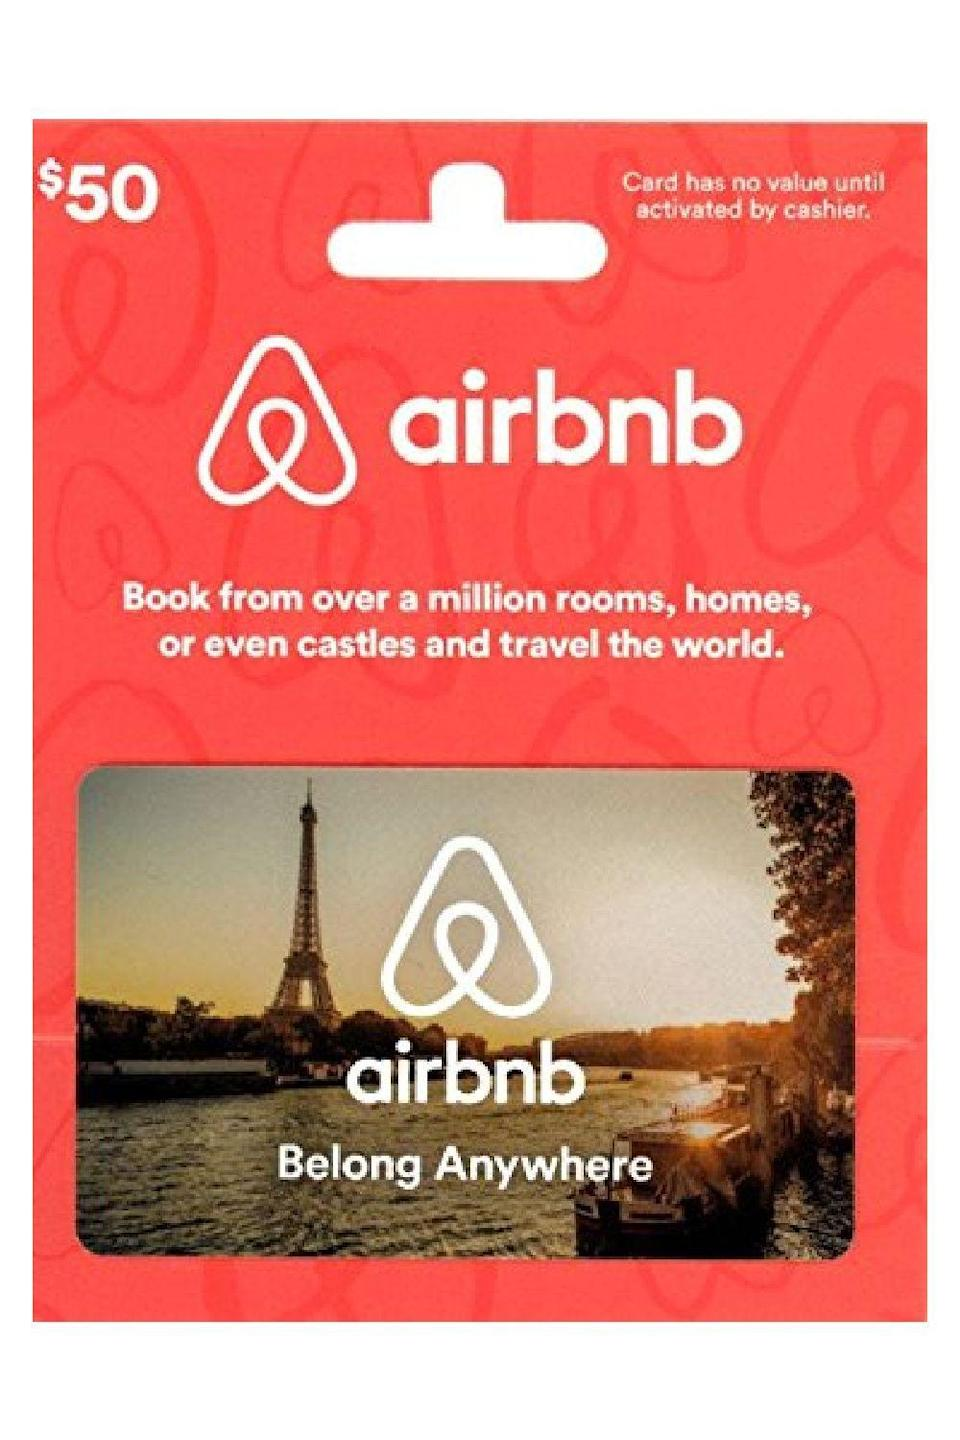 """<p><strong>Airbnb</strong></p><p>amazon.com</p><p><a href=""""https://www.amazon.com/dp/B01ESBMY3W?tag=syn-yahoo-20&ascsubtag=%5Bartid%7C10049.g.34229001%5Bsrc%7Cyahoo-us"""" rel=""""nofollow noopener"""" target=""""_blank"""" data-ylk=""""slk:Shop Now"""" class=""""link rapid-noclick-resp"""">Shop Now</a></p><p>They might not be doing too much traveling right now, but this gift card will give the traveler in your life something really, really exciting to look forward to. </p>"""